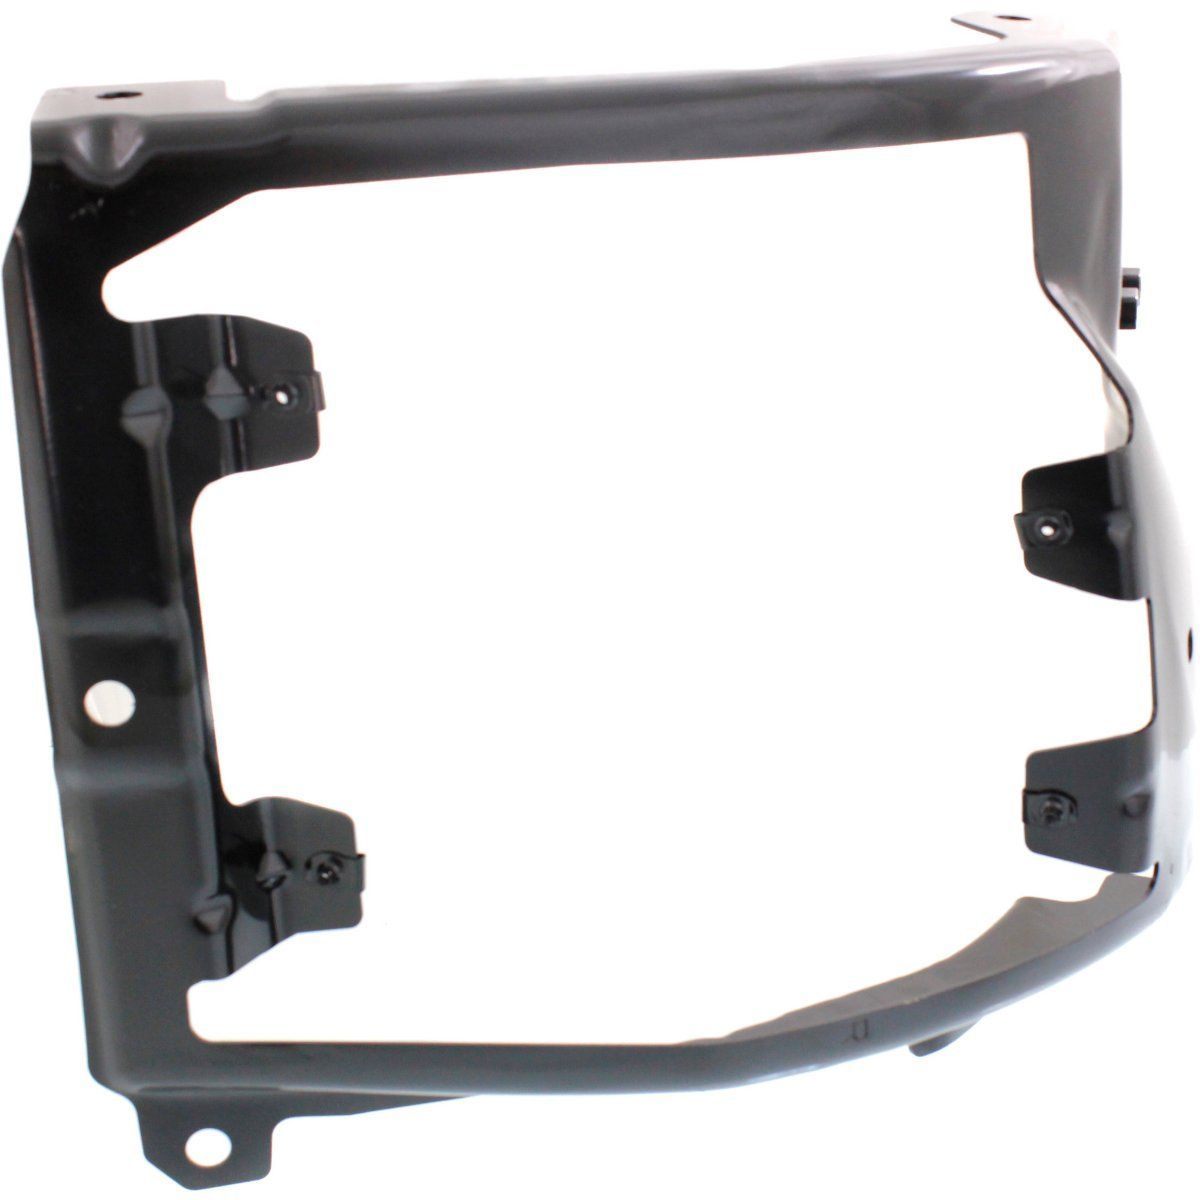 New Fog Light Bracket For Ram 2500 2011-2017 CH1061100